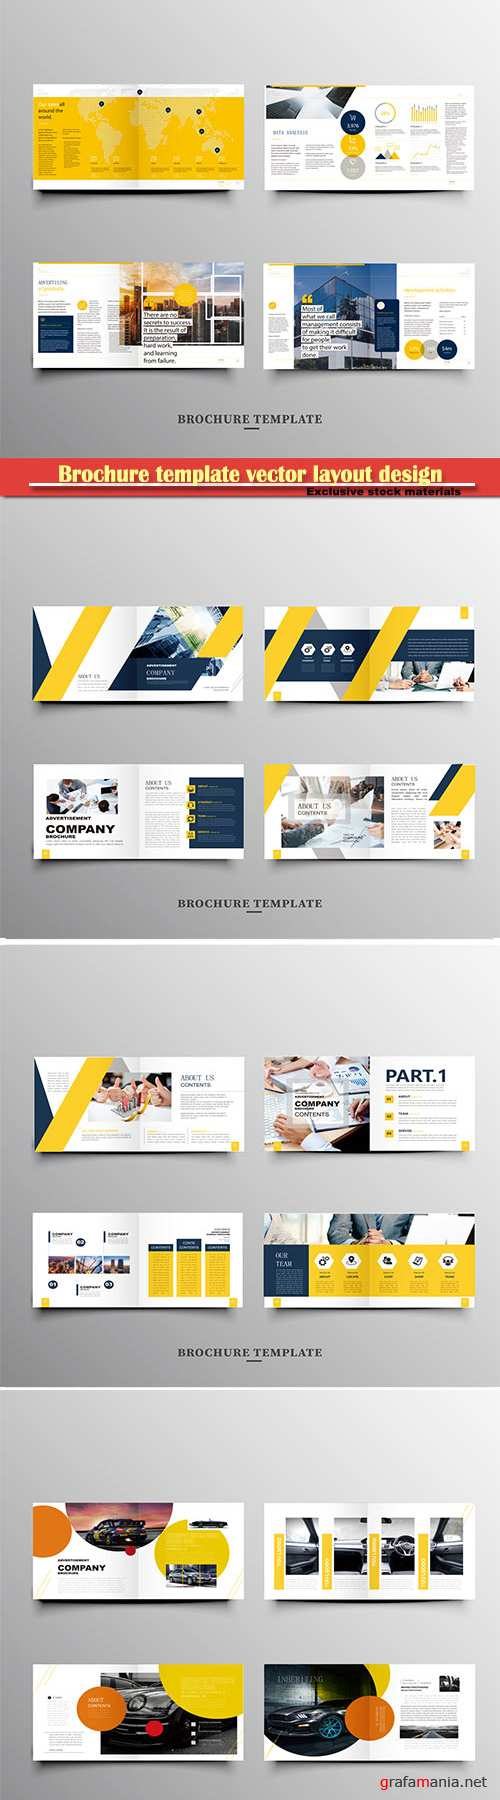 Brochure template vector layout design, corporate business annual report, magazine, flyer mockup # 249